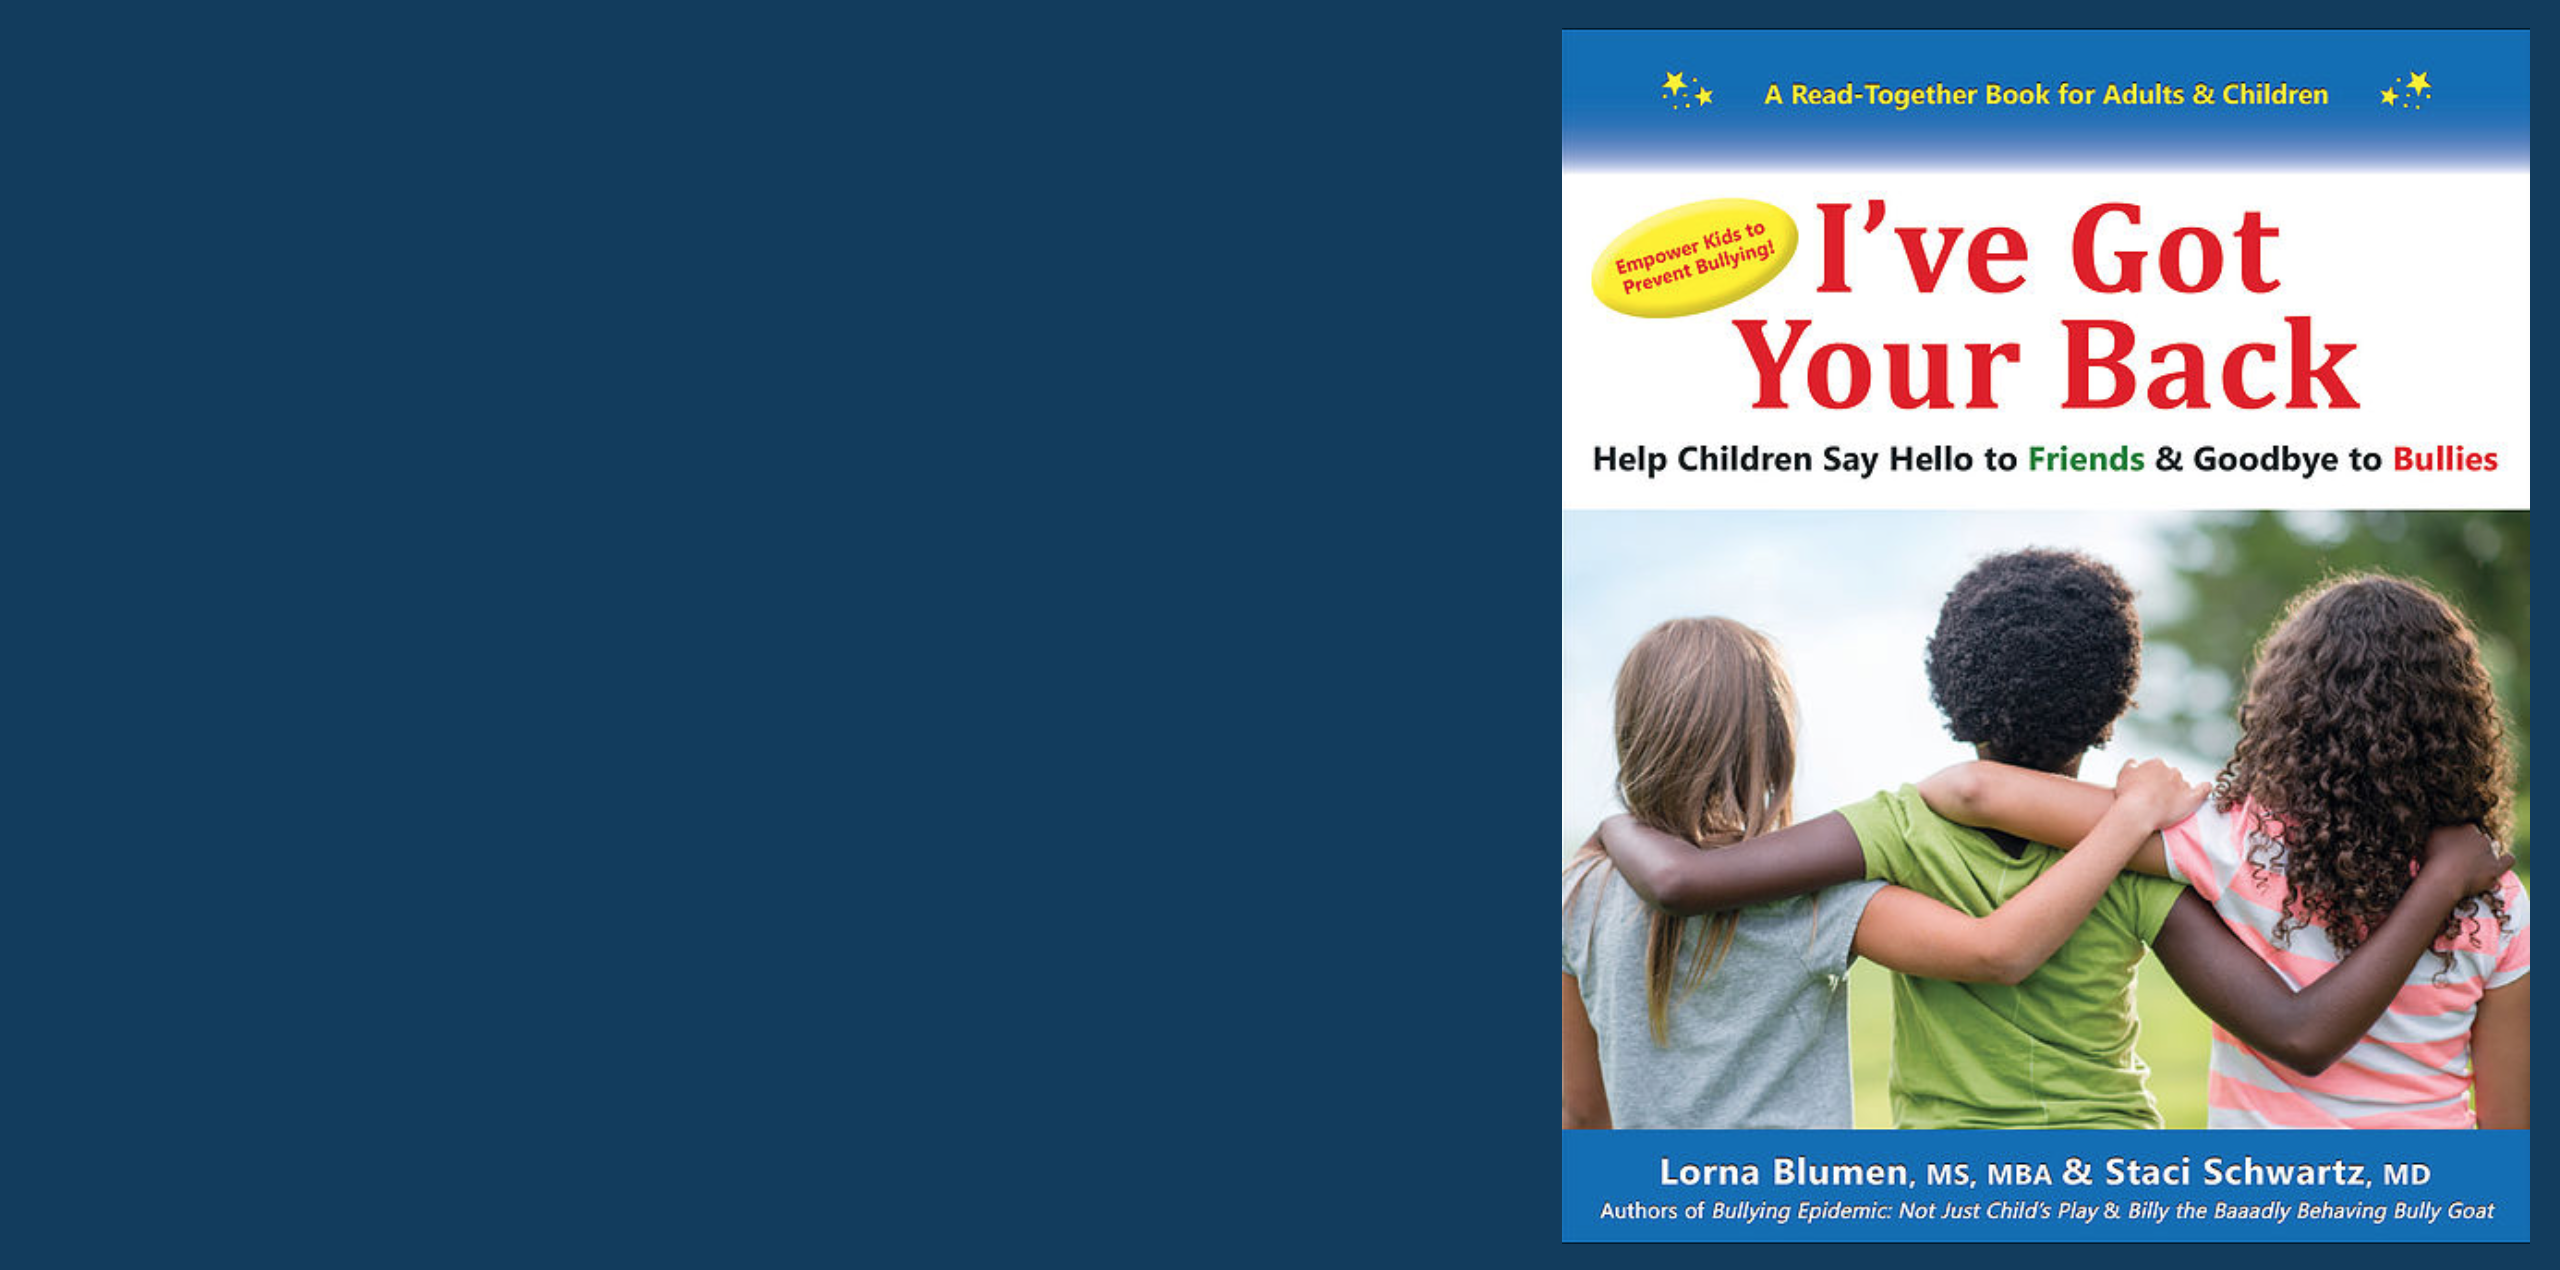 I've Got Your Back: Help Children Say Hello to Friends & Goodbye to Bullies